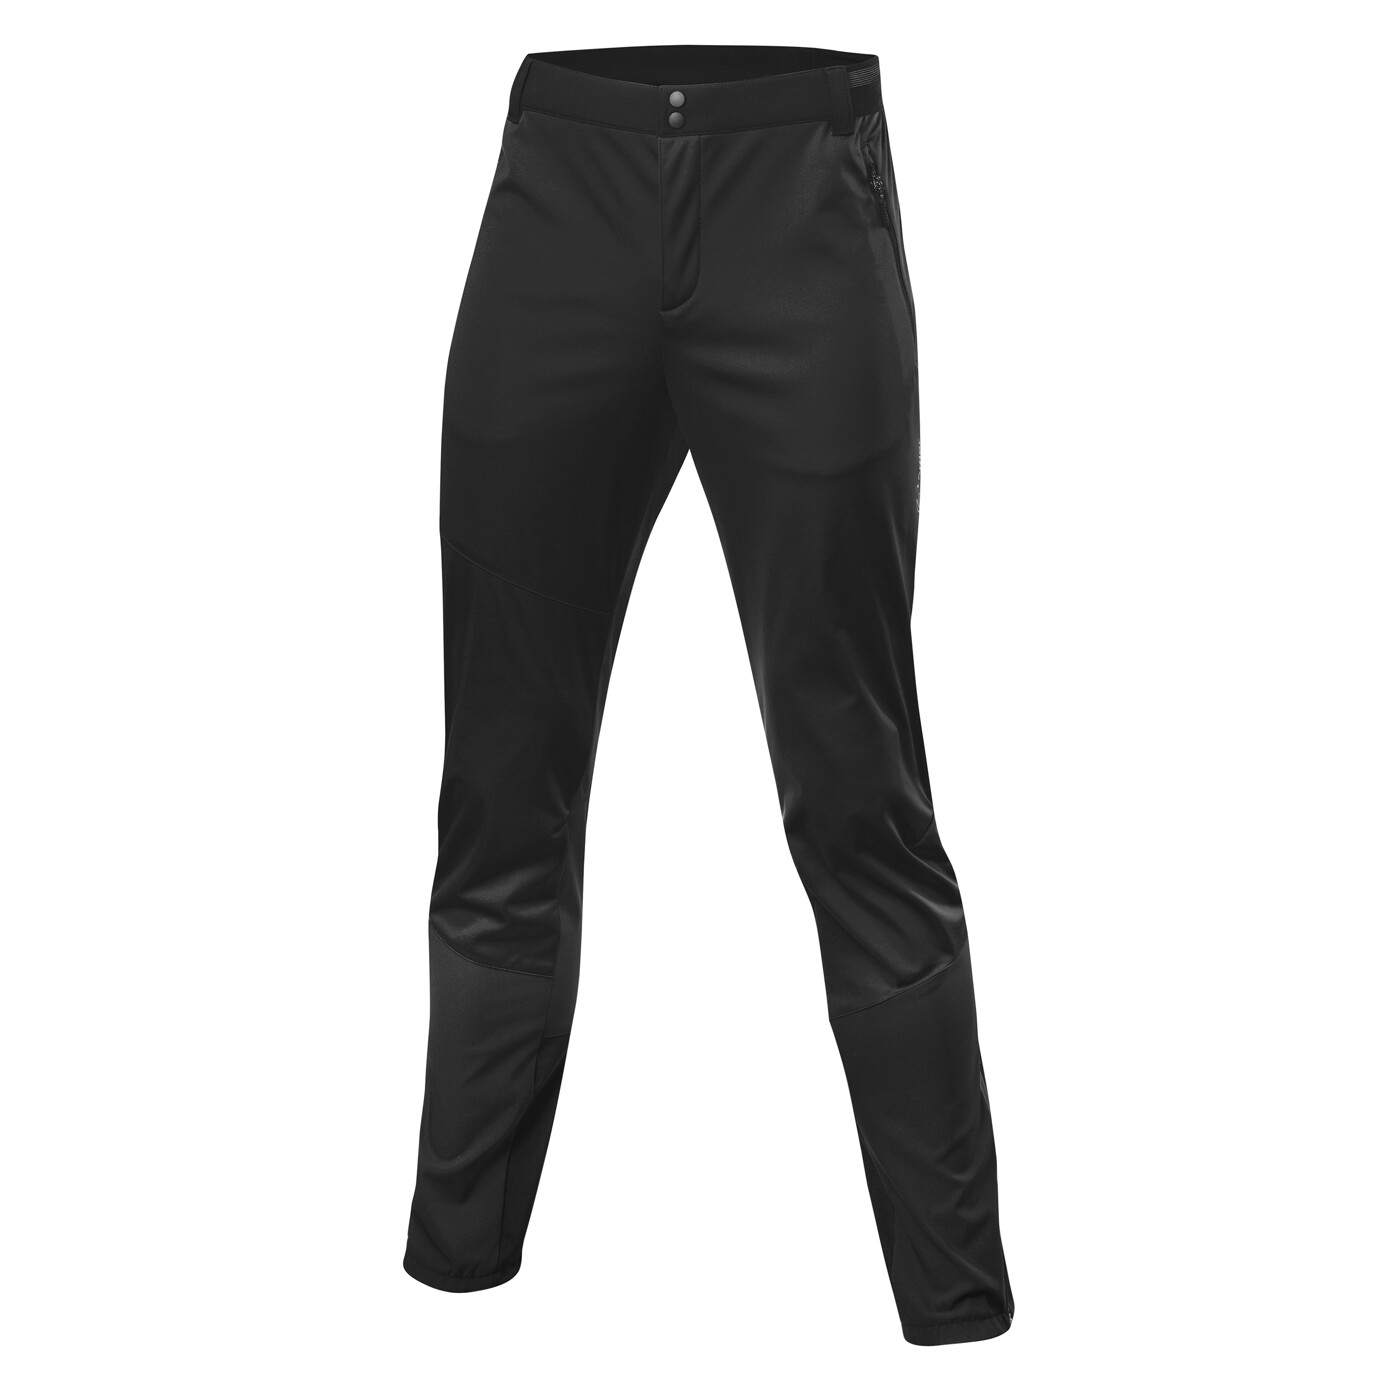 LÖFFLER M TOURING PANTS WS LIGHT - Herren